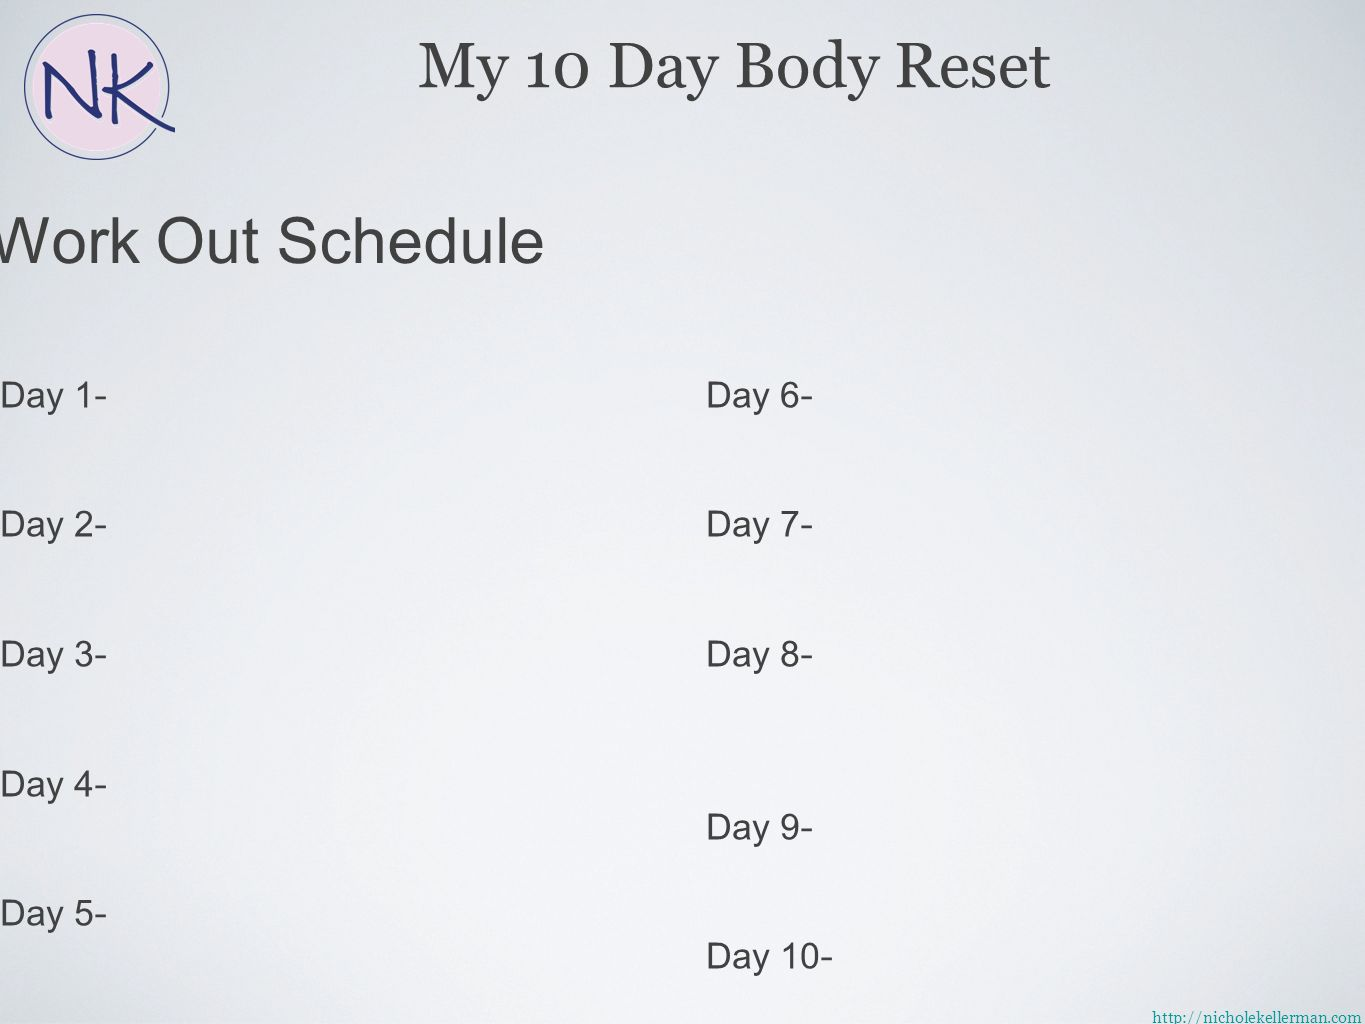 Work Out Schedule Day 1 - Day 2 - Day 3 - Day 4 - Day 5 - Day 6 - Day 7 - Day 8 - Day 9 - Day 10 - My 10 Day Body Reset http://nicholekellerman.com